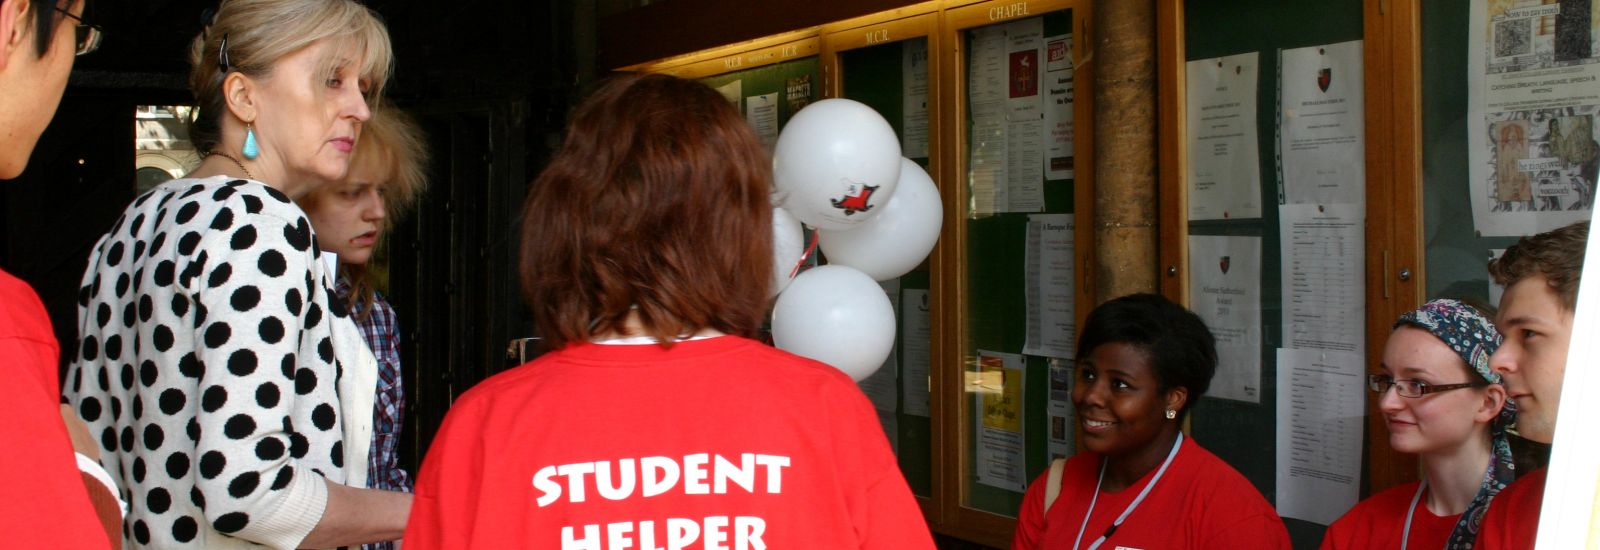 Student ambassadors welcoming families to an Open Day at St John's College